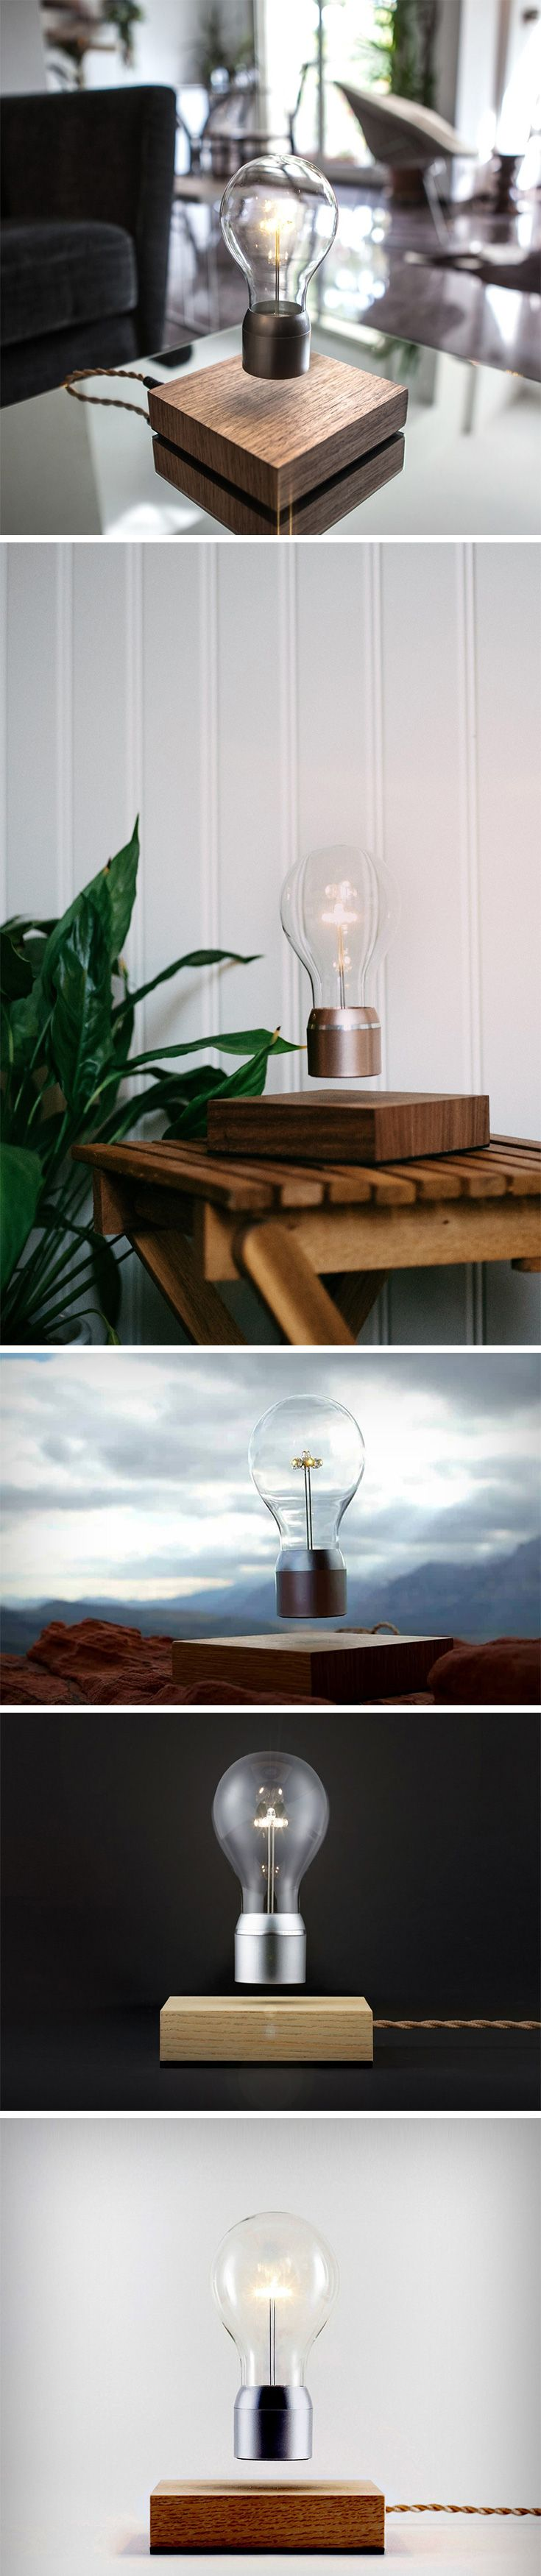 The Flyte lamp does something mysterious. Not only does it host an incandescent bulb that flats over its wooden base, the bulb also magically lights up with invisible wireless electrical energy that travels through air from the base till the bulb! A completely surreal experience, the Flyte lamp feels like the lovechild of a Salvador Dali and Nikola Tesla romance.